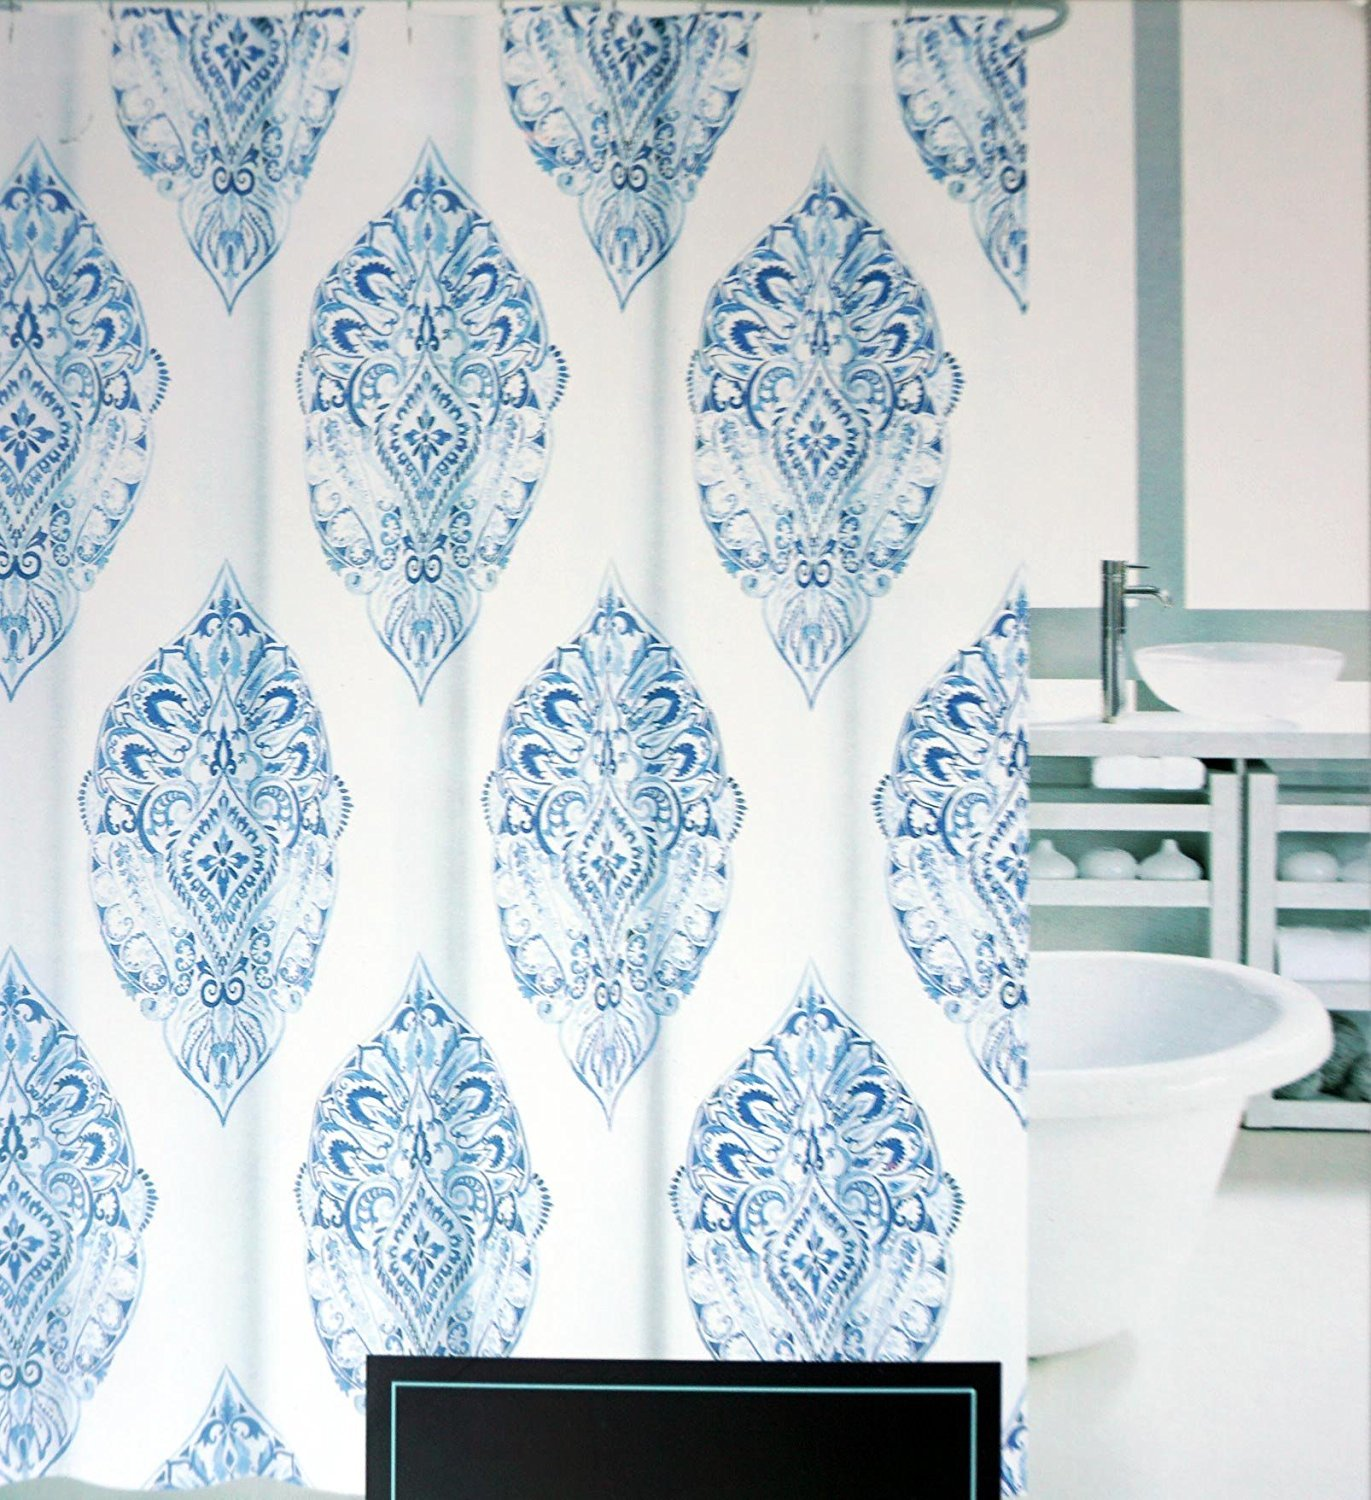 Cynthia rowley medallion shower curtain - Amazon Com Cynthia Rowley Fabric Shower Curtain Medallions In Shades Of Blue On White Agua Medallion Home Kitchen